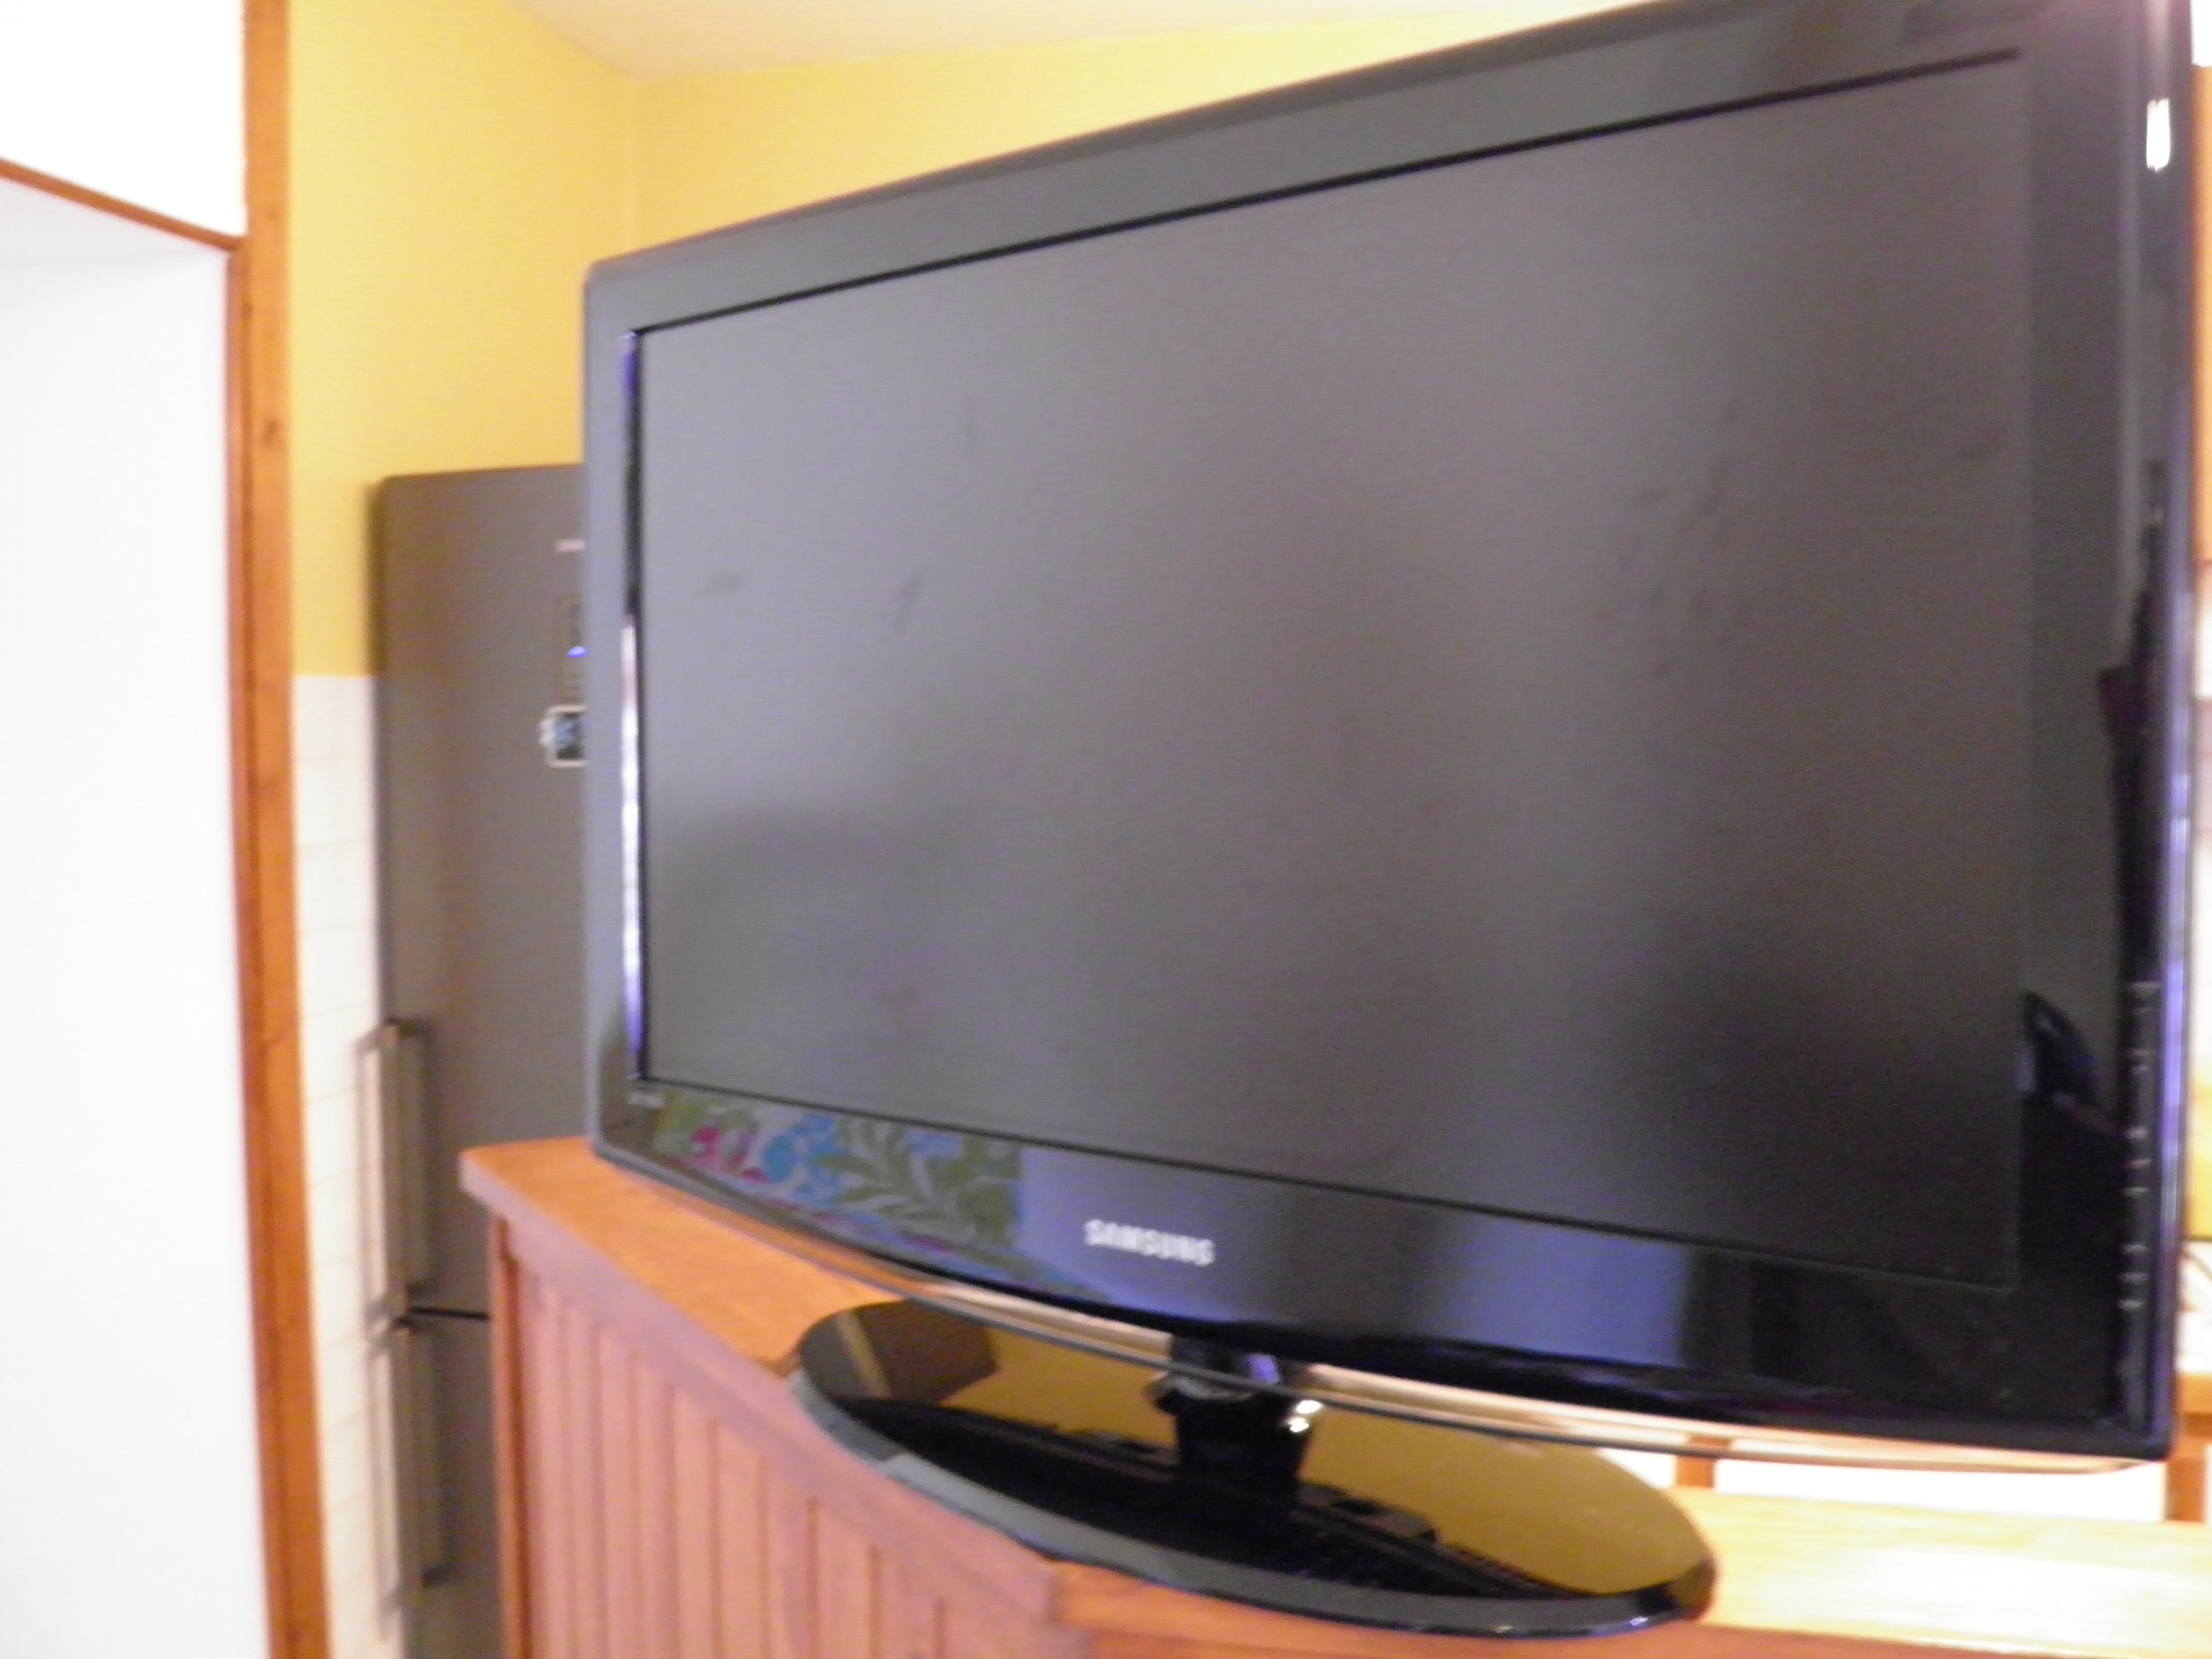 je peux vendre ma tv samsung combien sur le forum blabla 18 25 ans 01 03 2013 15 10 31. Black Bedroom Furniture Sets. Home Design Ideas